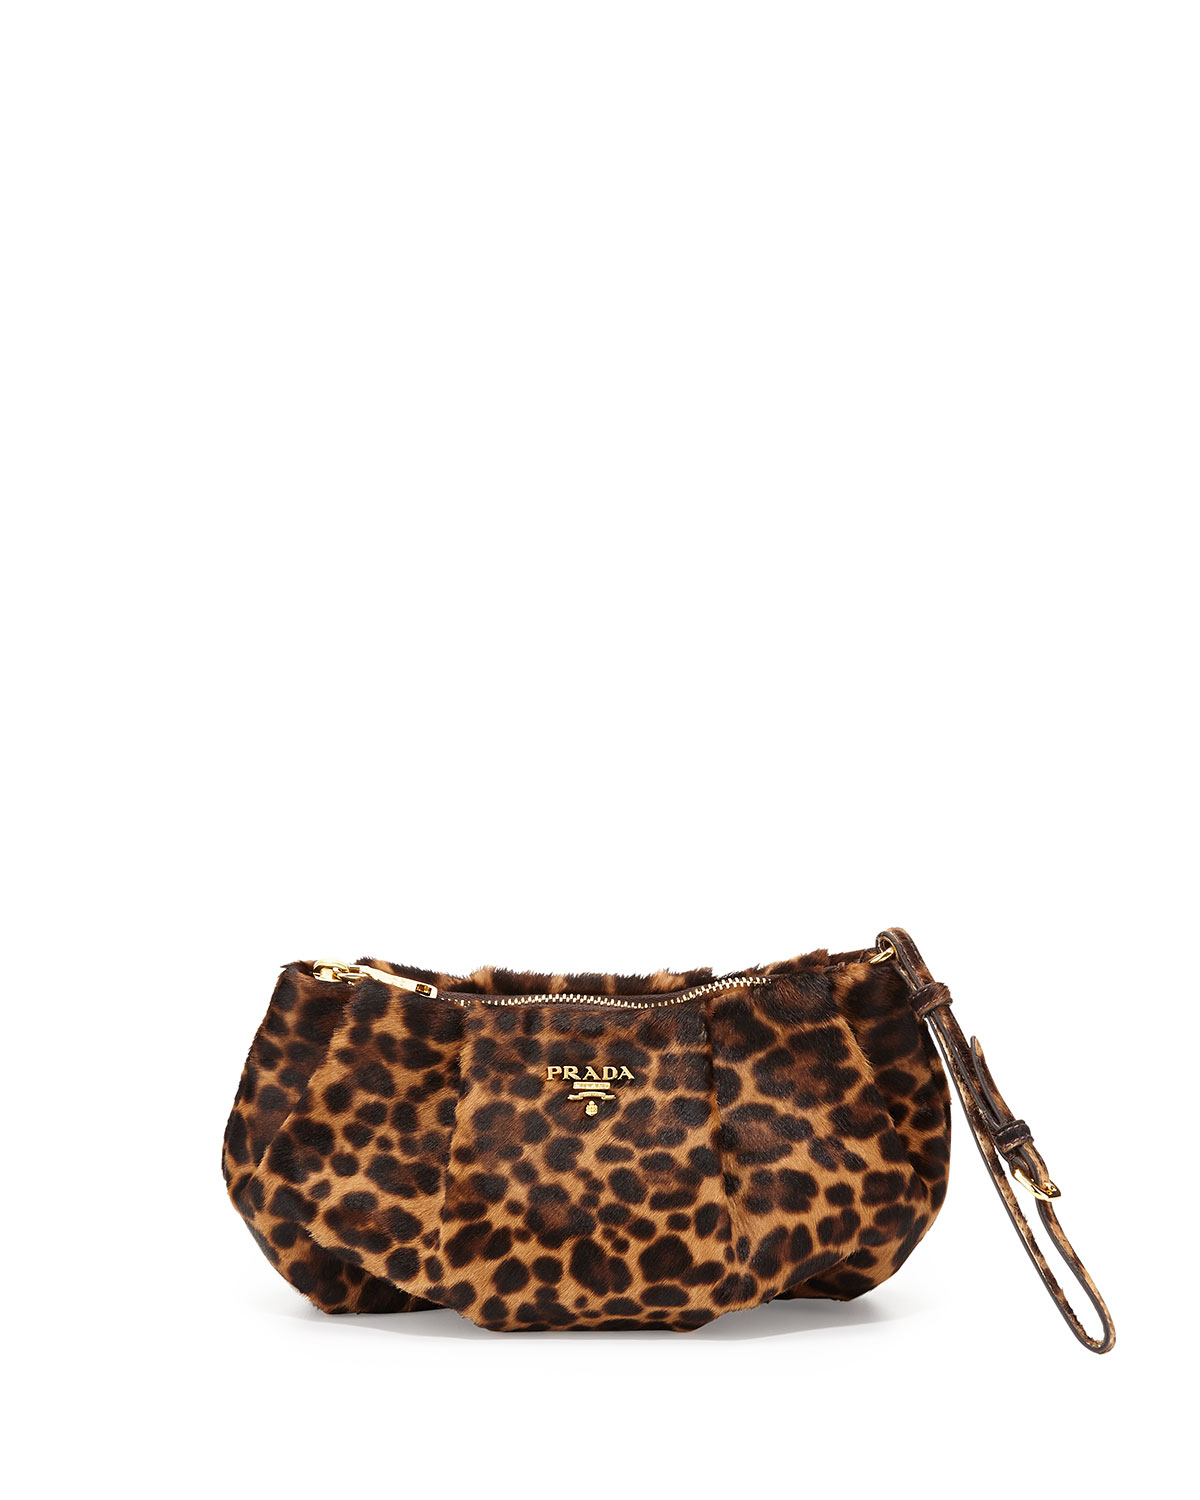 prada handbags knockoffs - Prada Cavallino Zip Wristlet Bag in Brown (Leopard (Miele/Moro ...